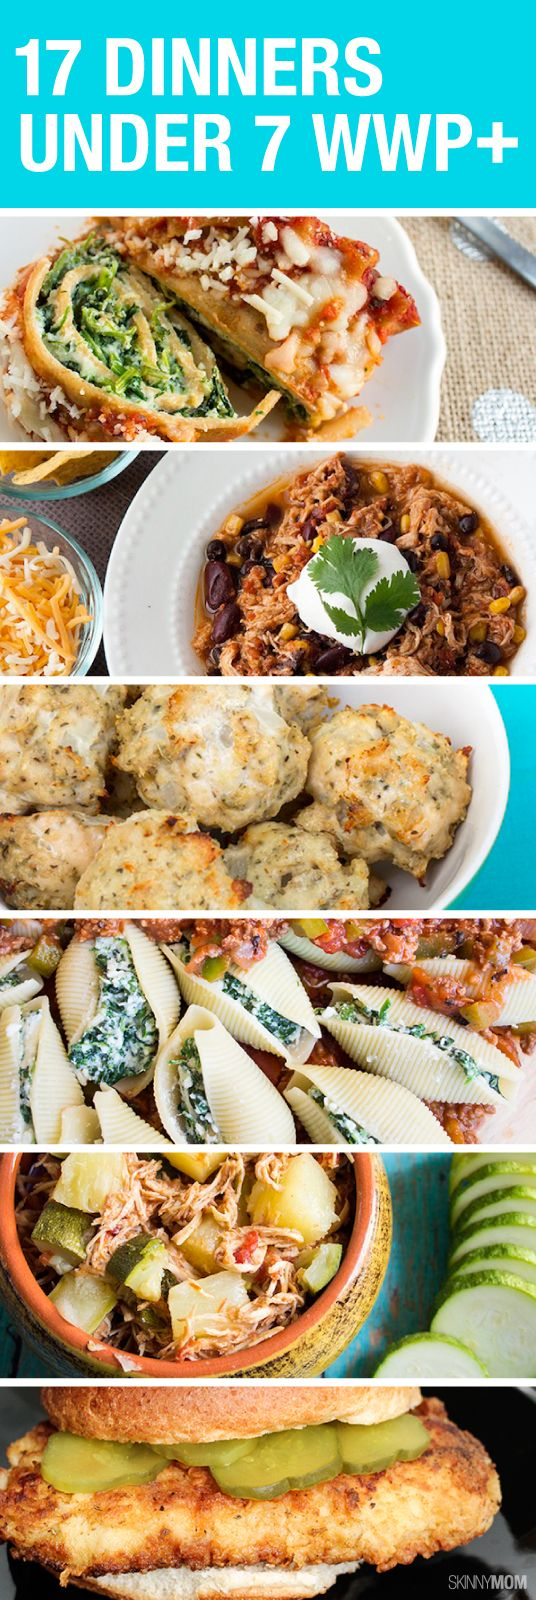 Here are some of the tastiest dinner finds that won't cost you a day's worth of points!